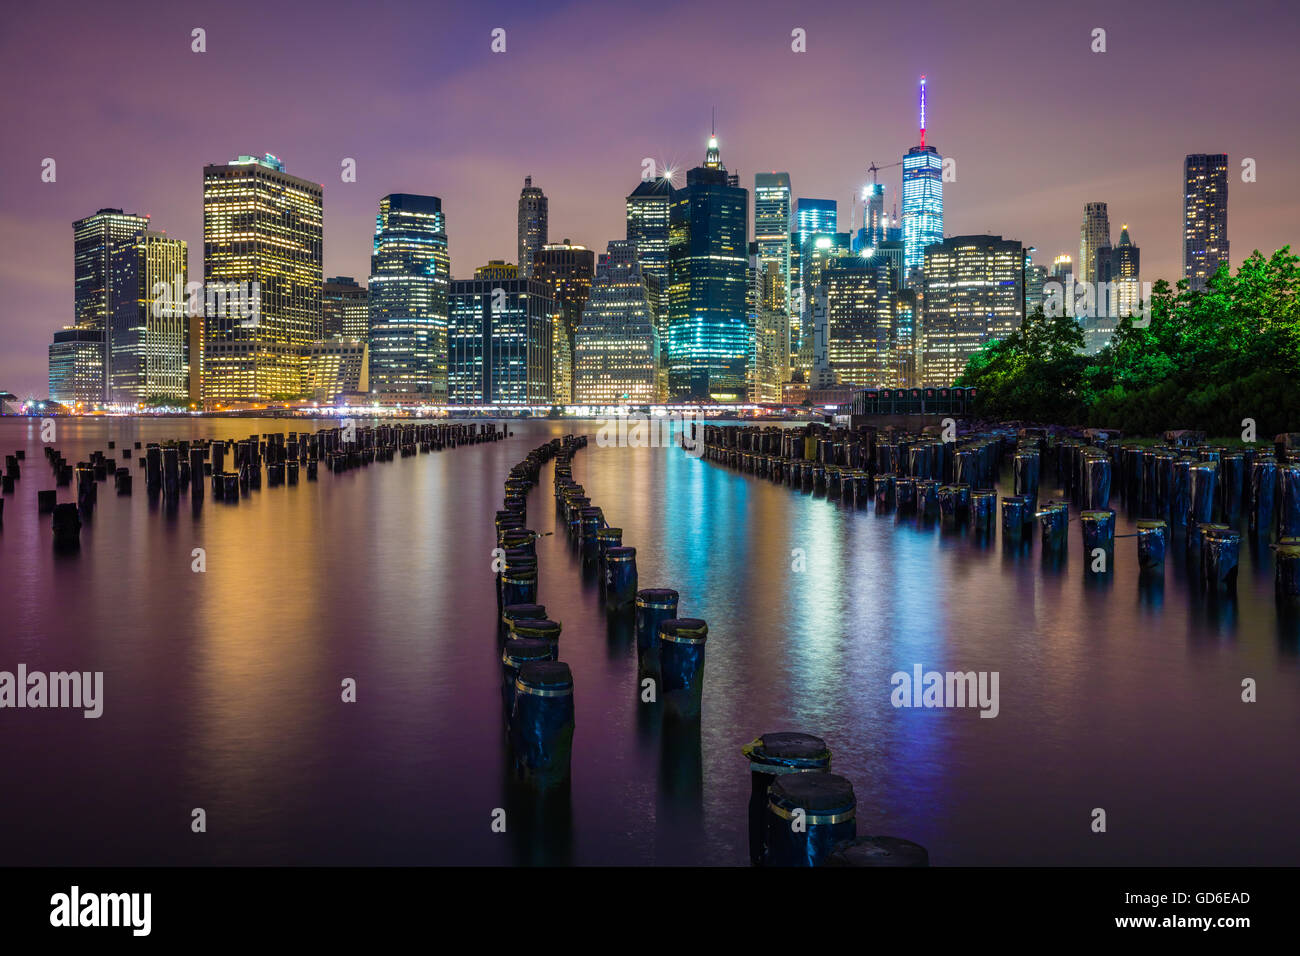 Brooklyn Bridge Park is an 85-acre park on the Brooklyn side of the East River in New York City. - Stock Image